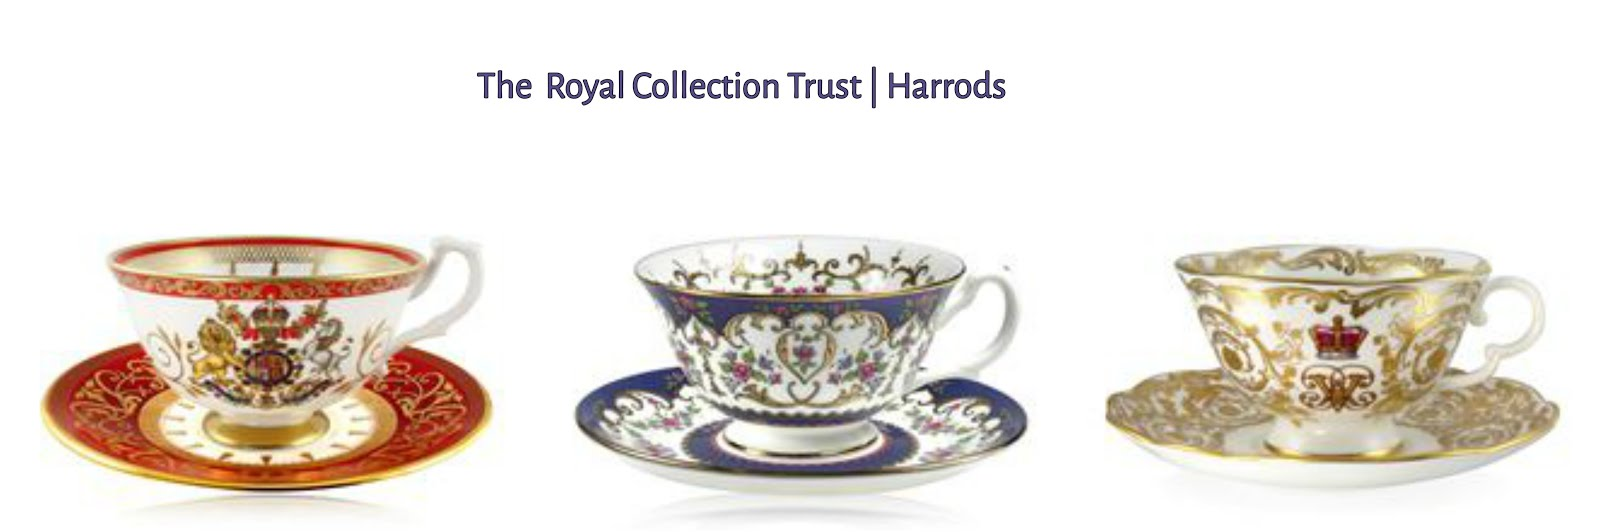 The Royal Collection Trust